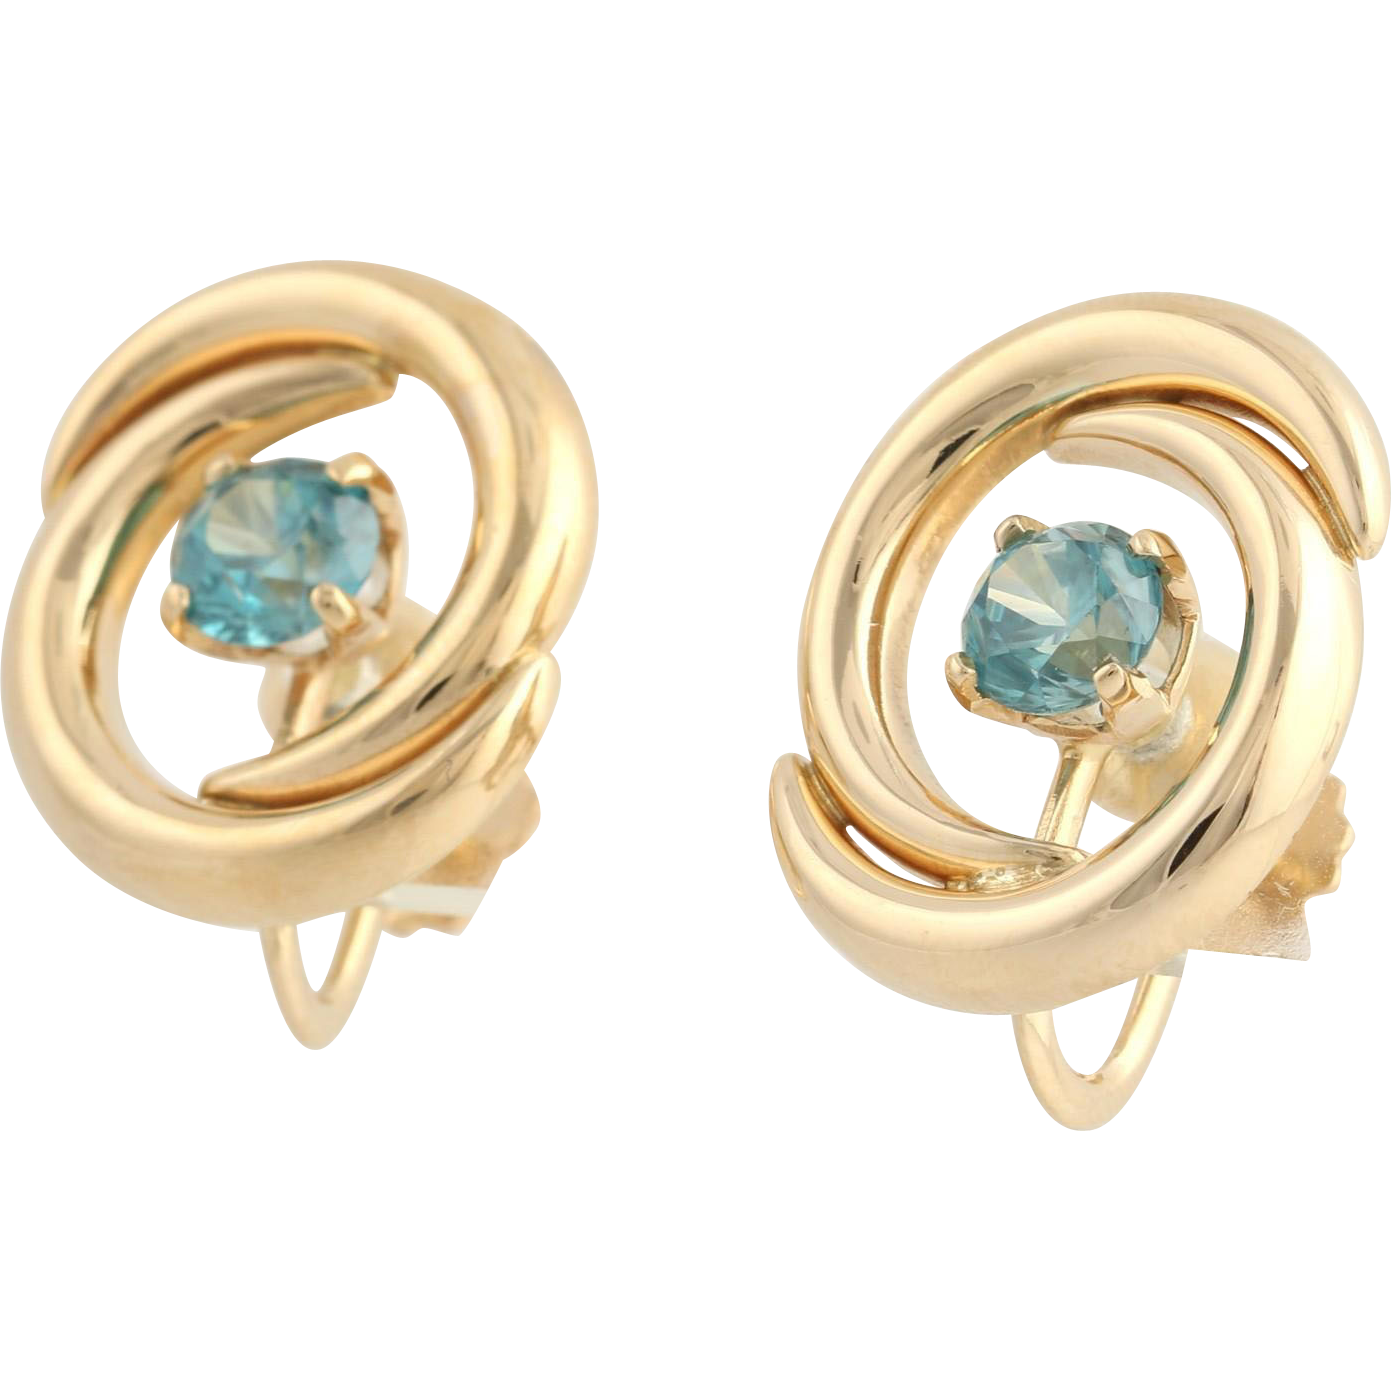 Blue Zircon Swirl Earrings - 14k Yellow Gold Non-Pierced Screw Oval 2.30ctw